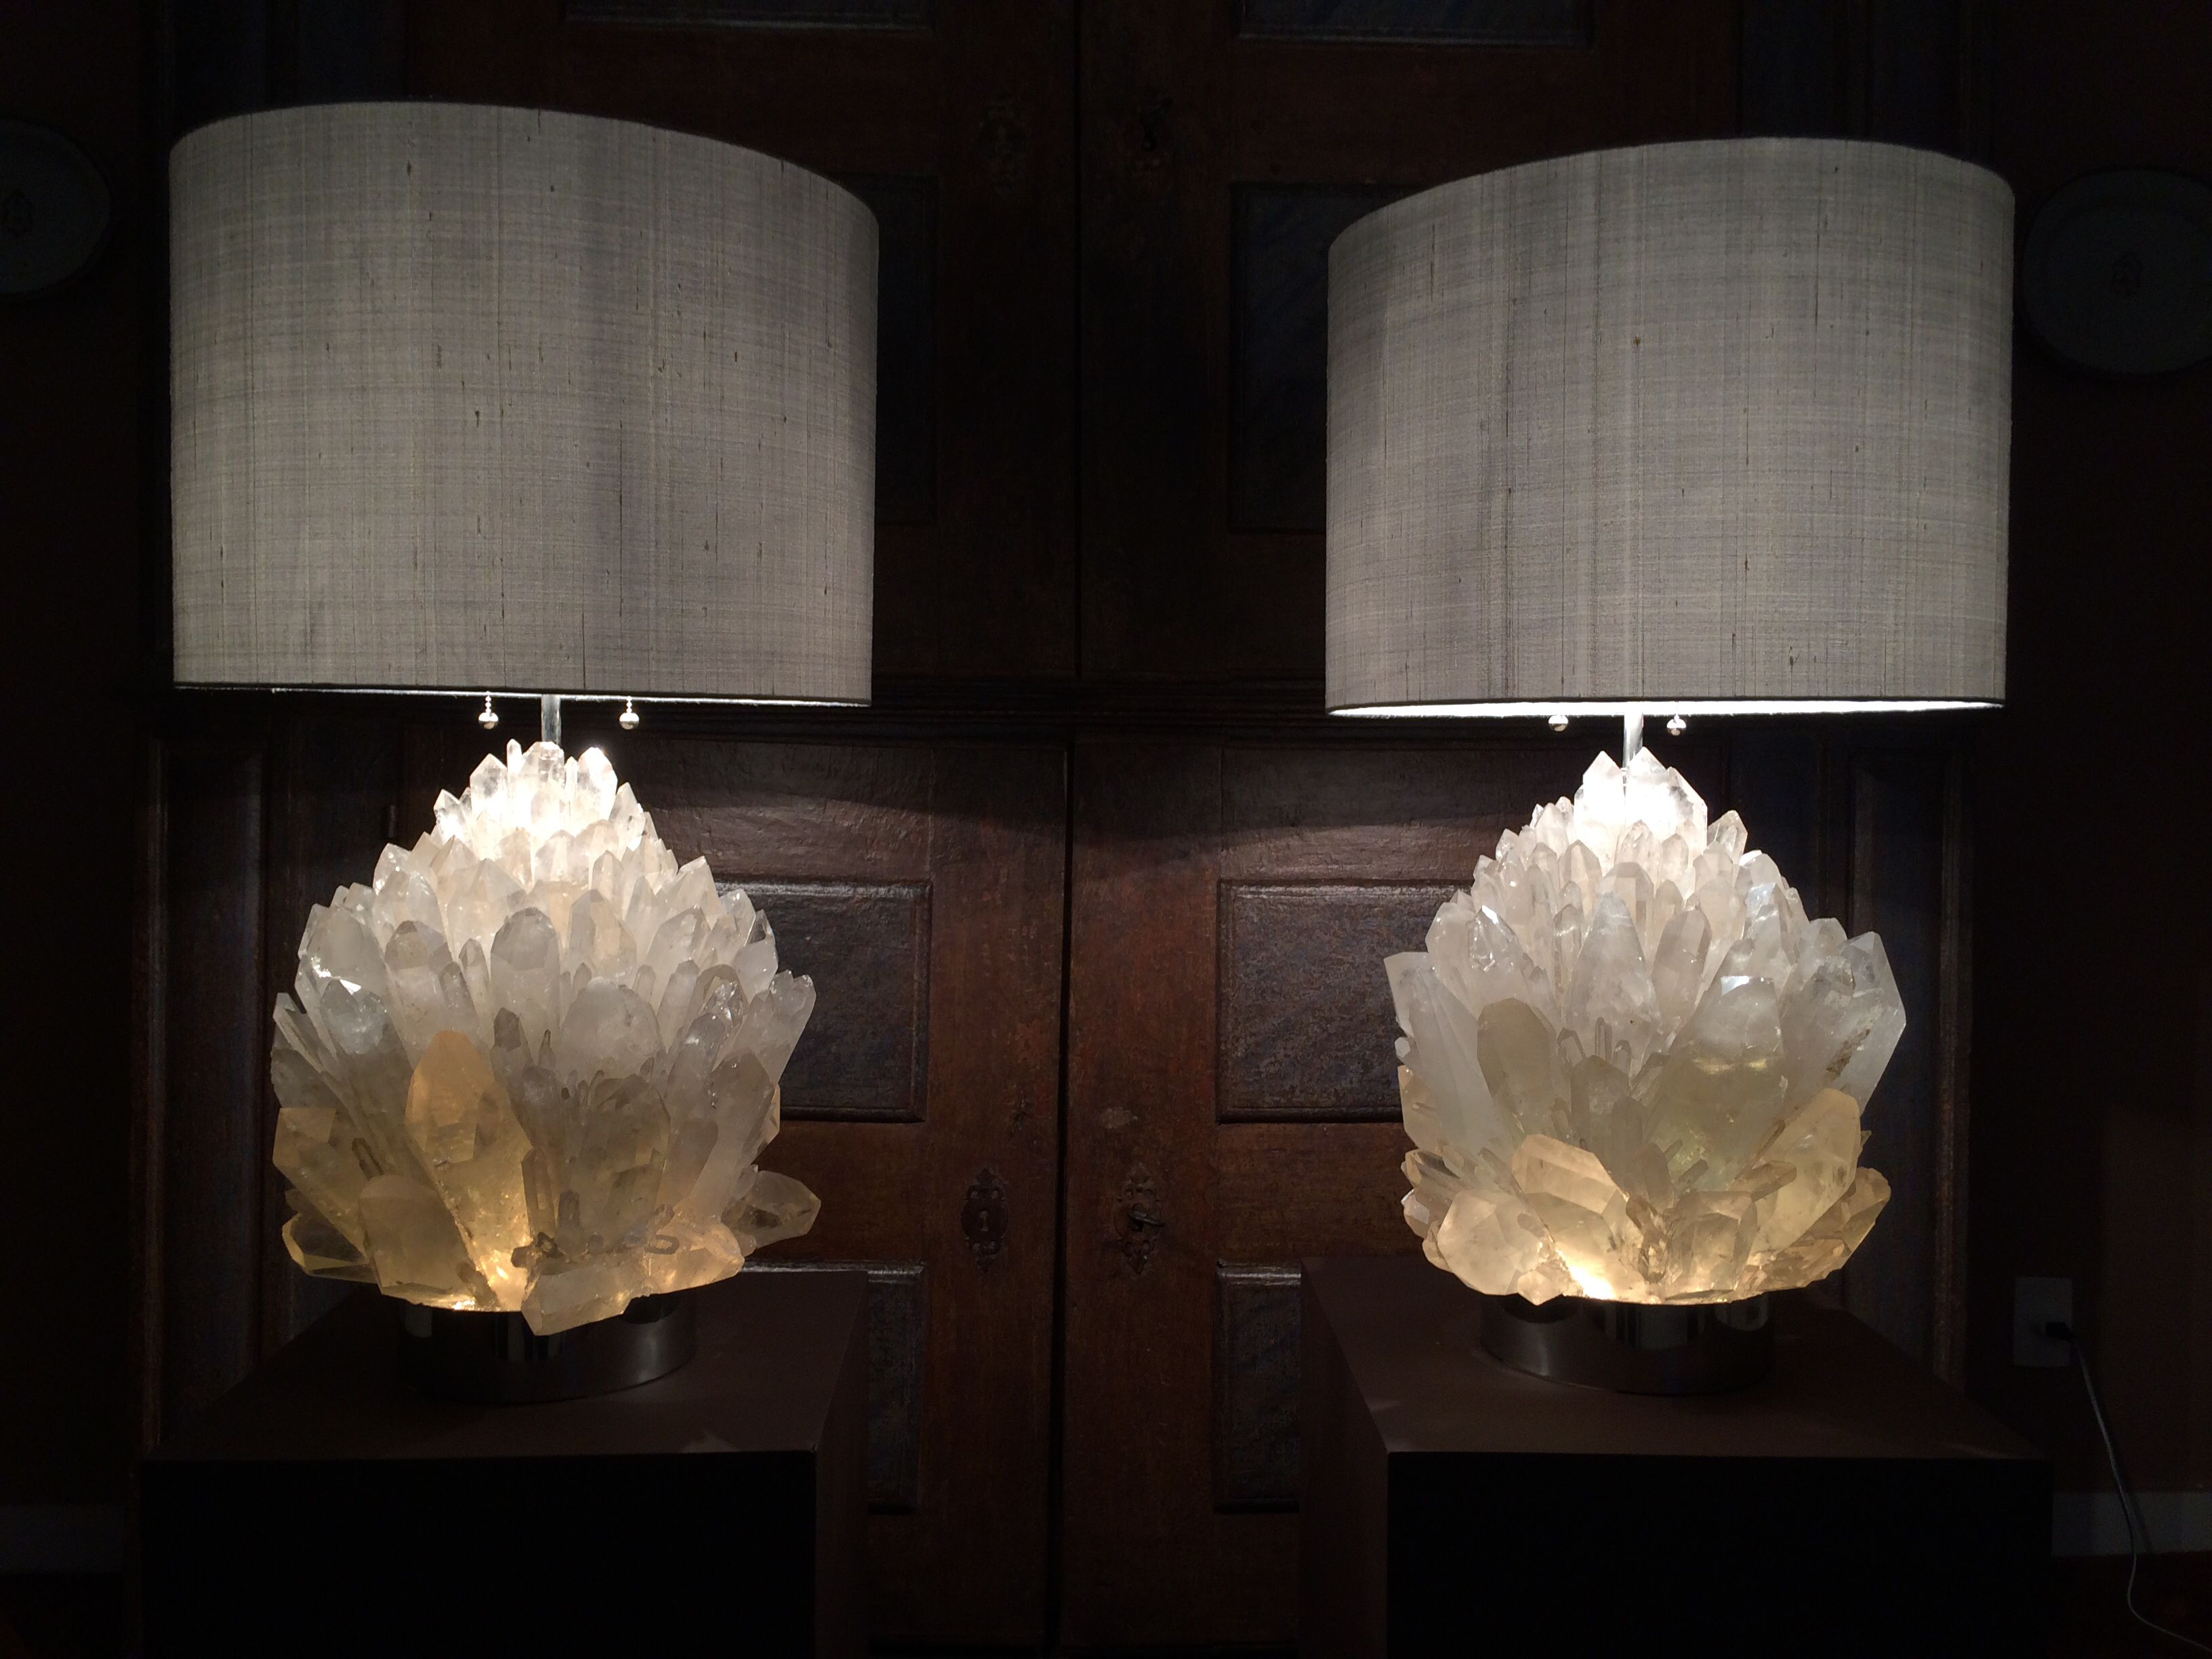 Rock crystal lamp 34 kg each design and build by demian for Rock lamp